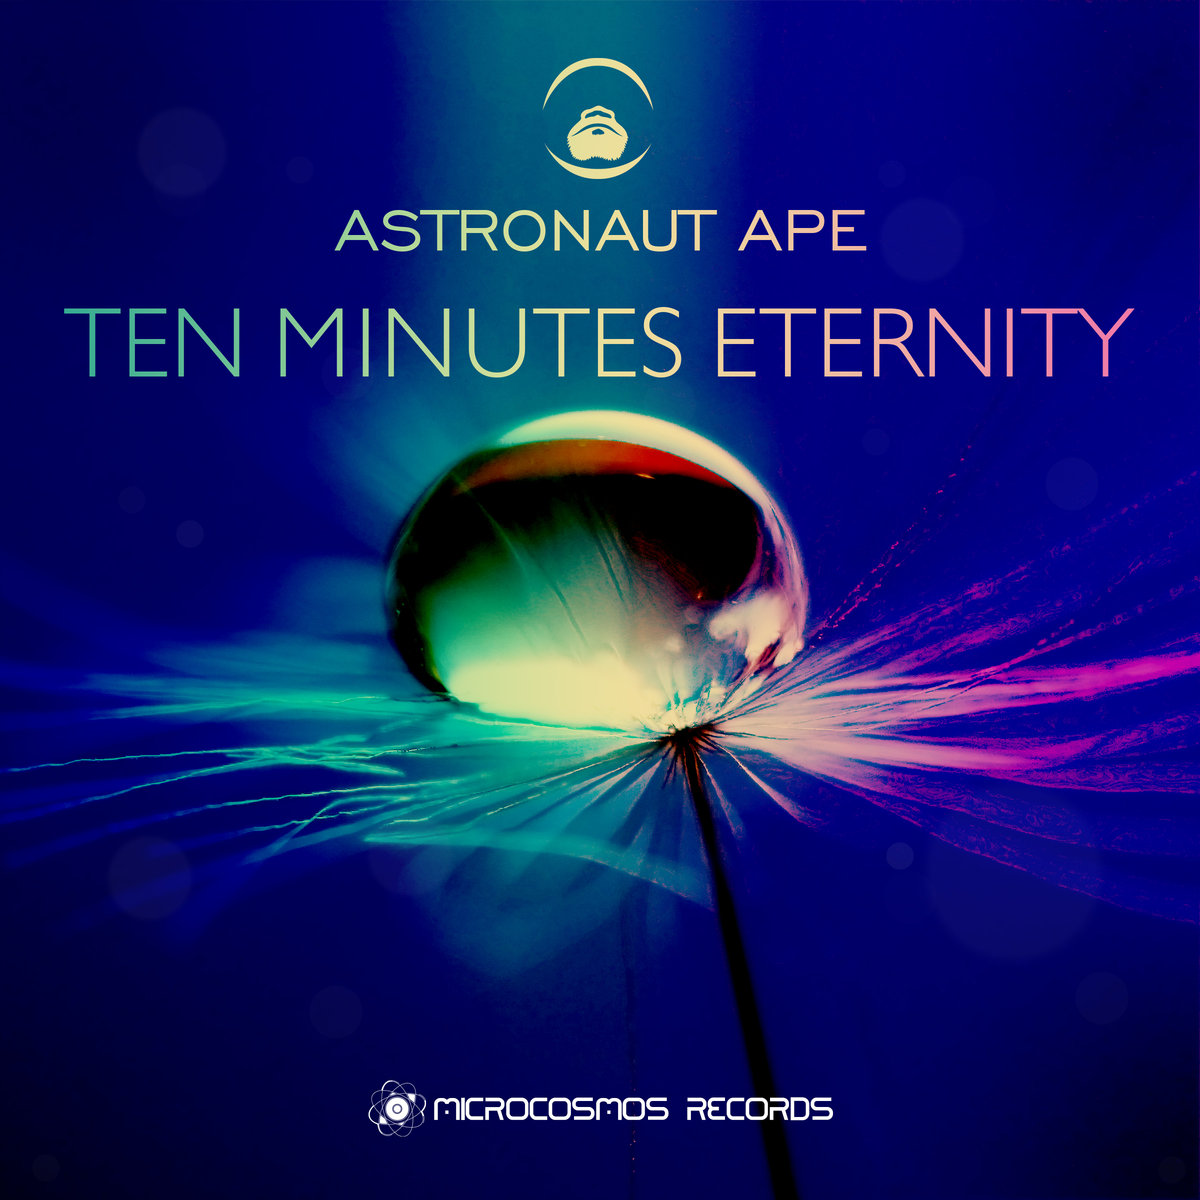 Astronaut Ape - Flow @ 'Ten Minutes Eternity' album (ambient, chill-out)